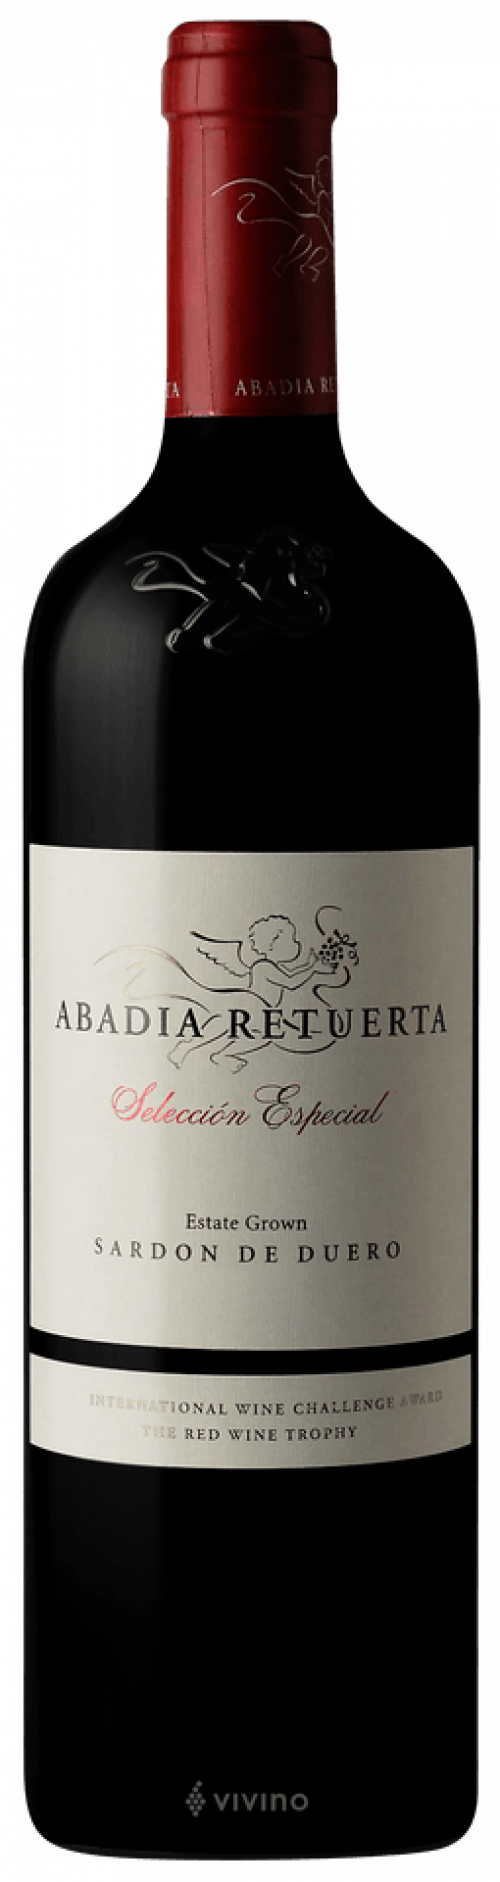 2016 Abadia Retuerta Seleccion Especial Sardon  de Duero 750ml